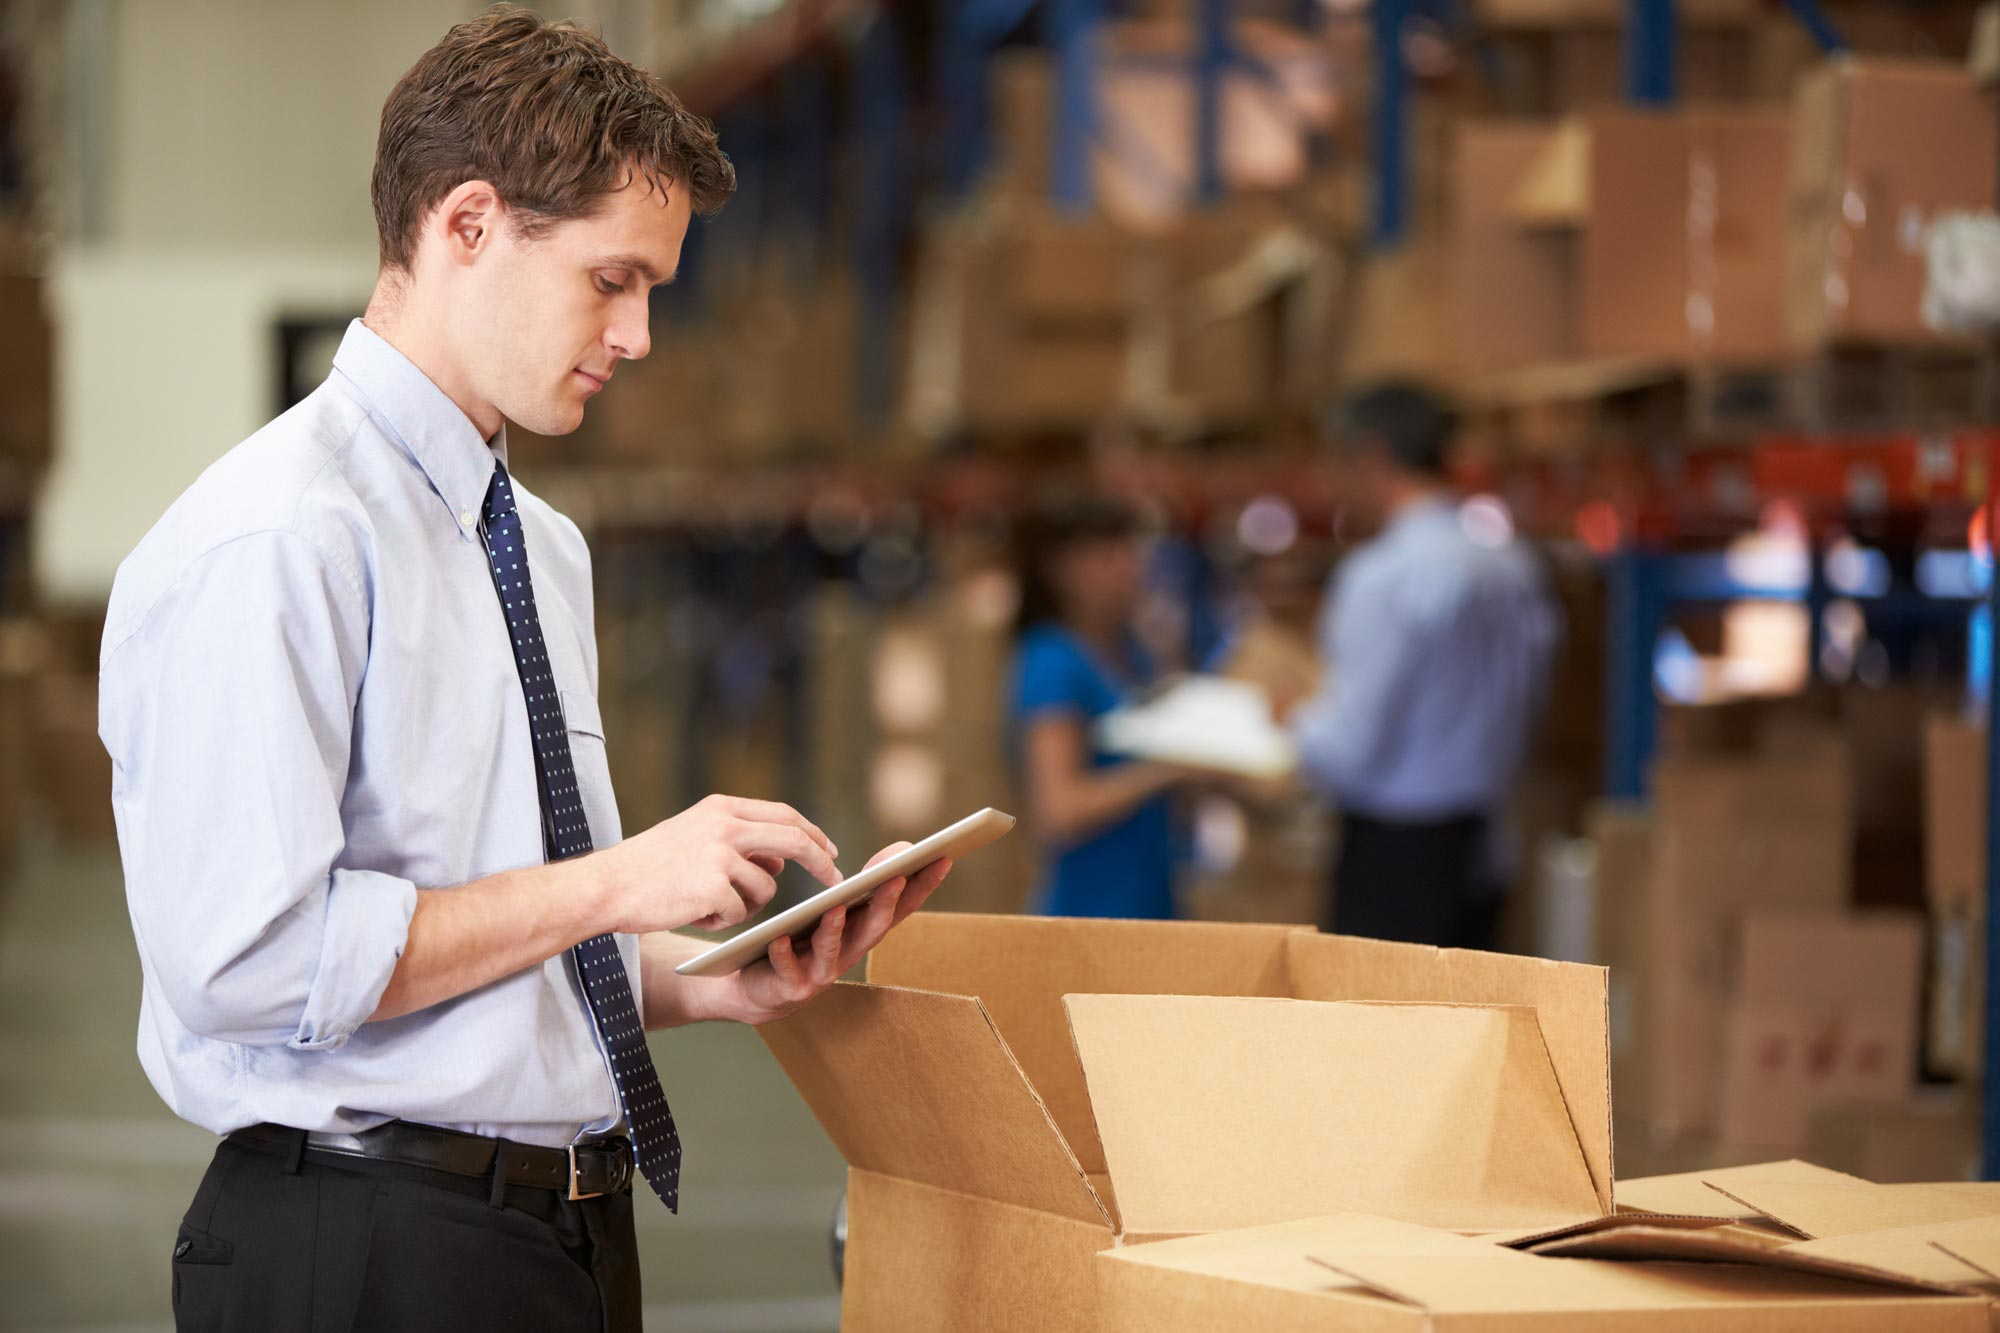 Manager-In-Warehouse-Checking-Boxes-Using-Digital-Tablet.jpg